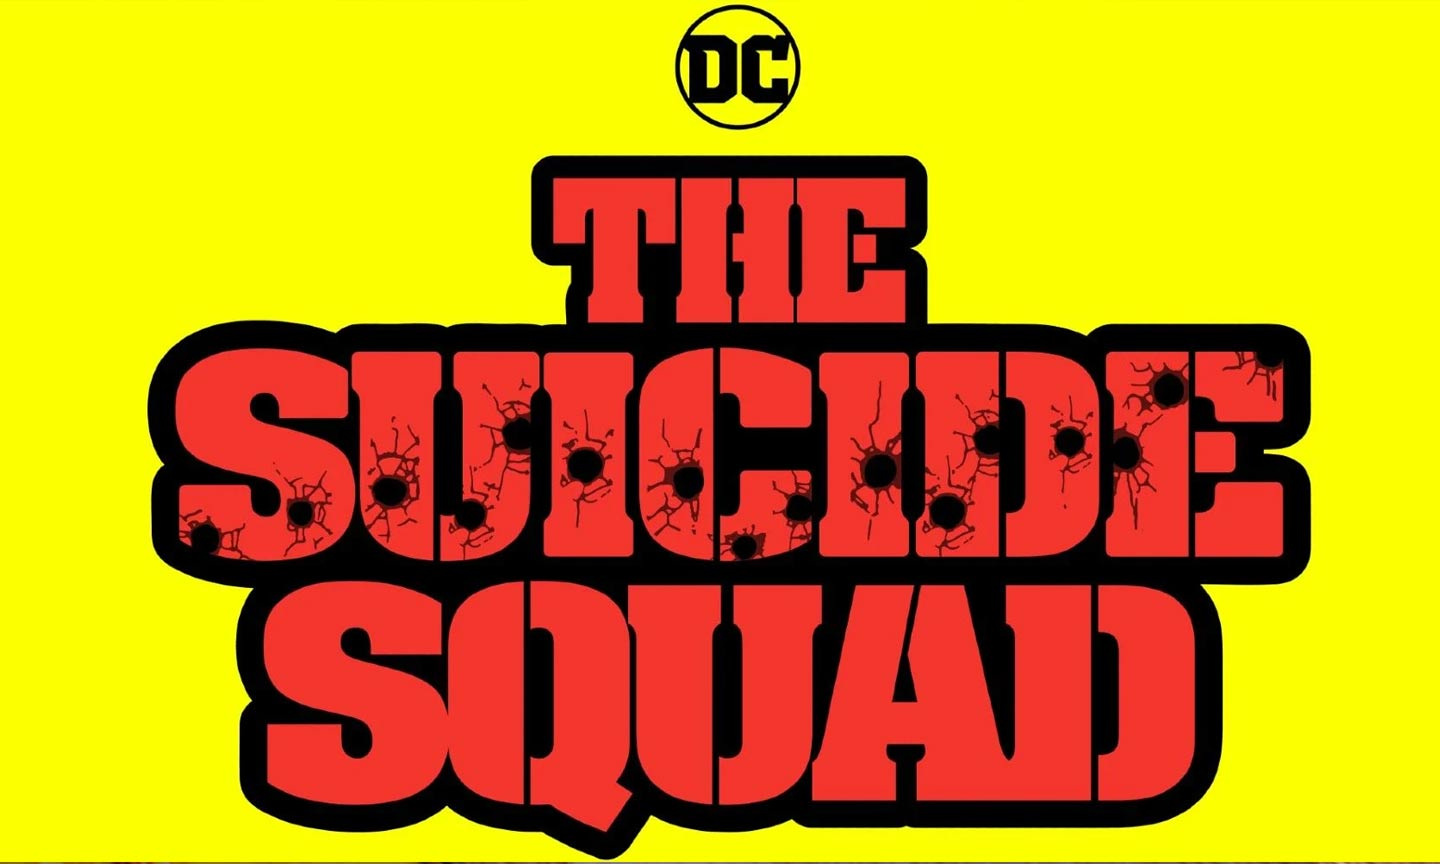 The Suicide Squad - (C) DC